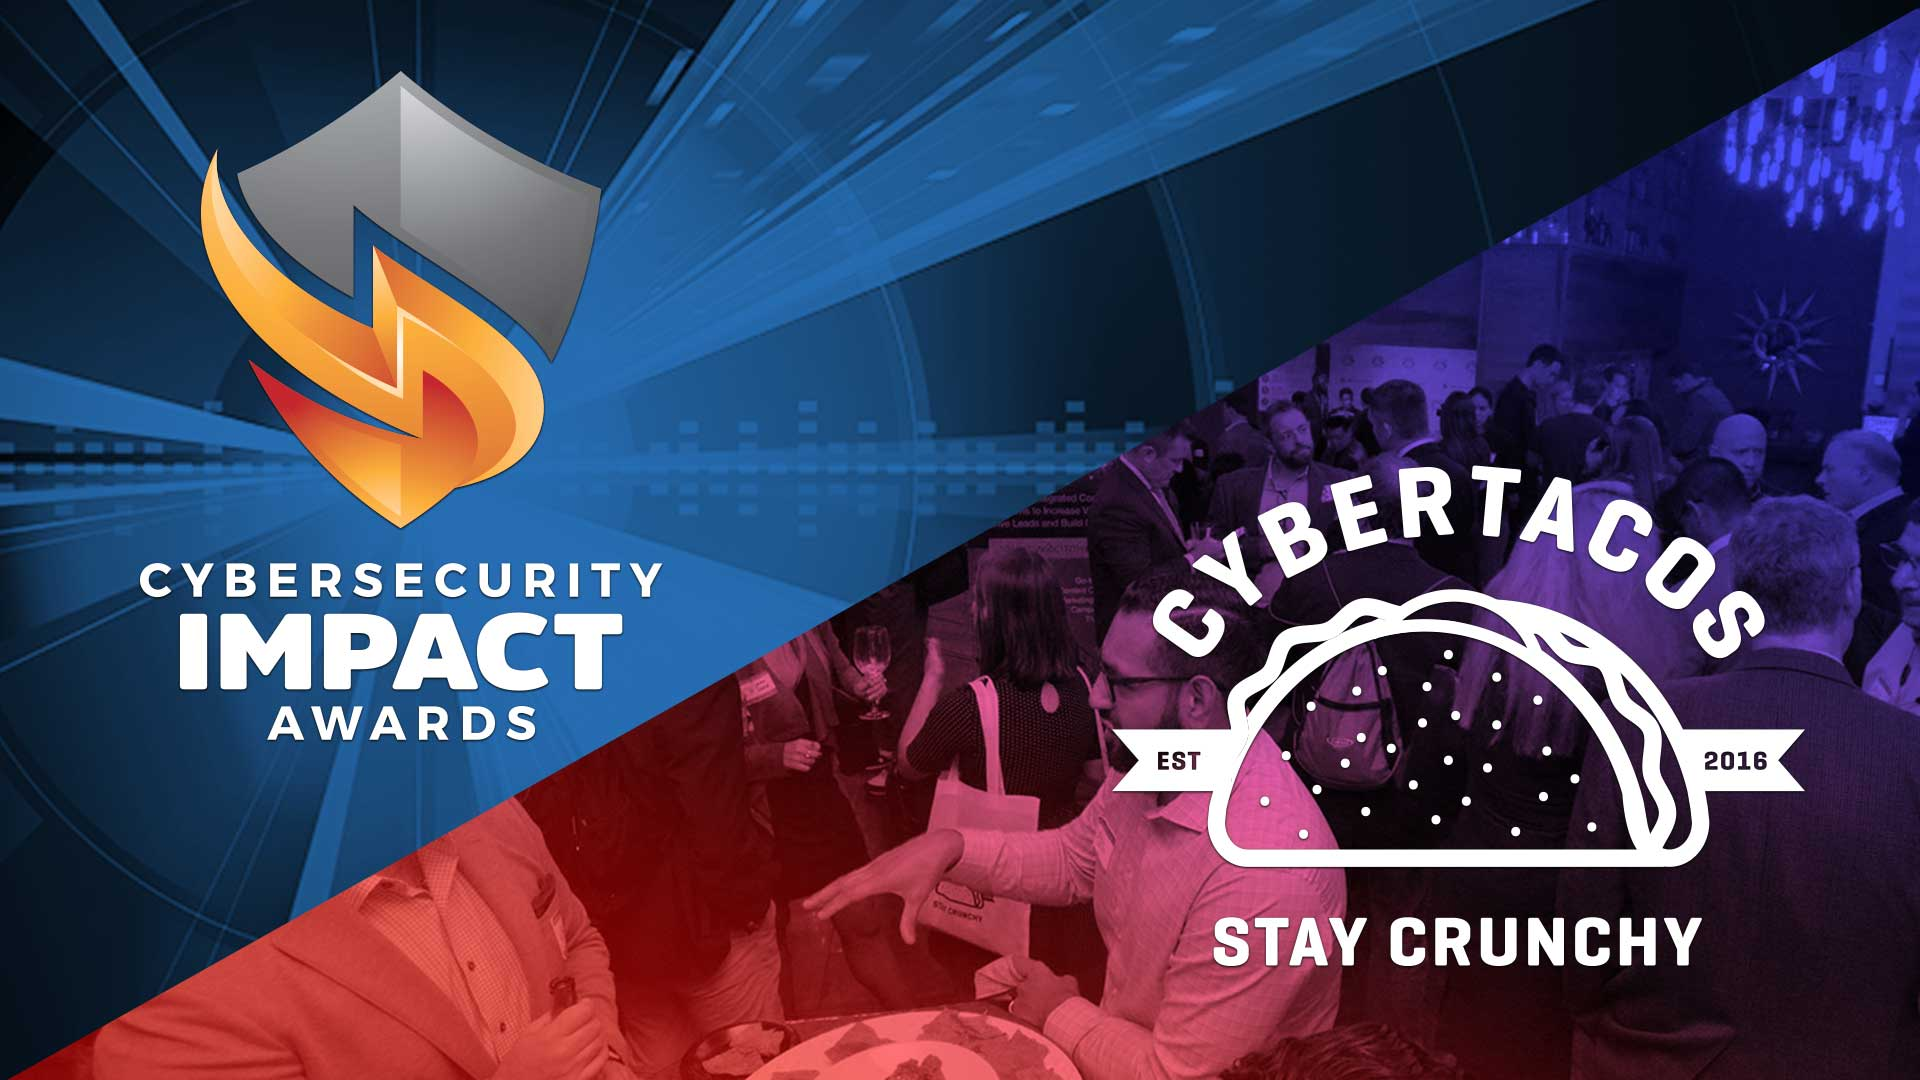 Cybersecurity Impact Awards